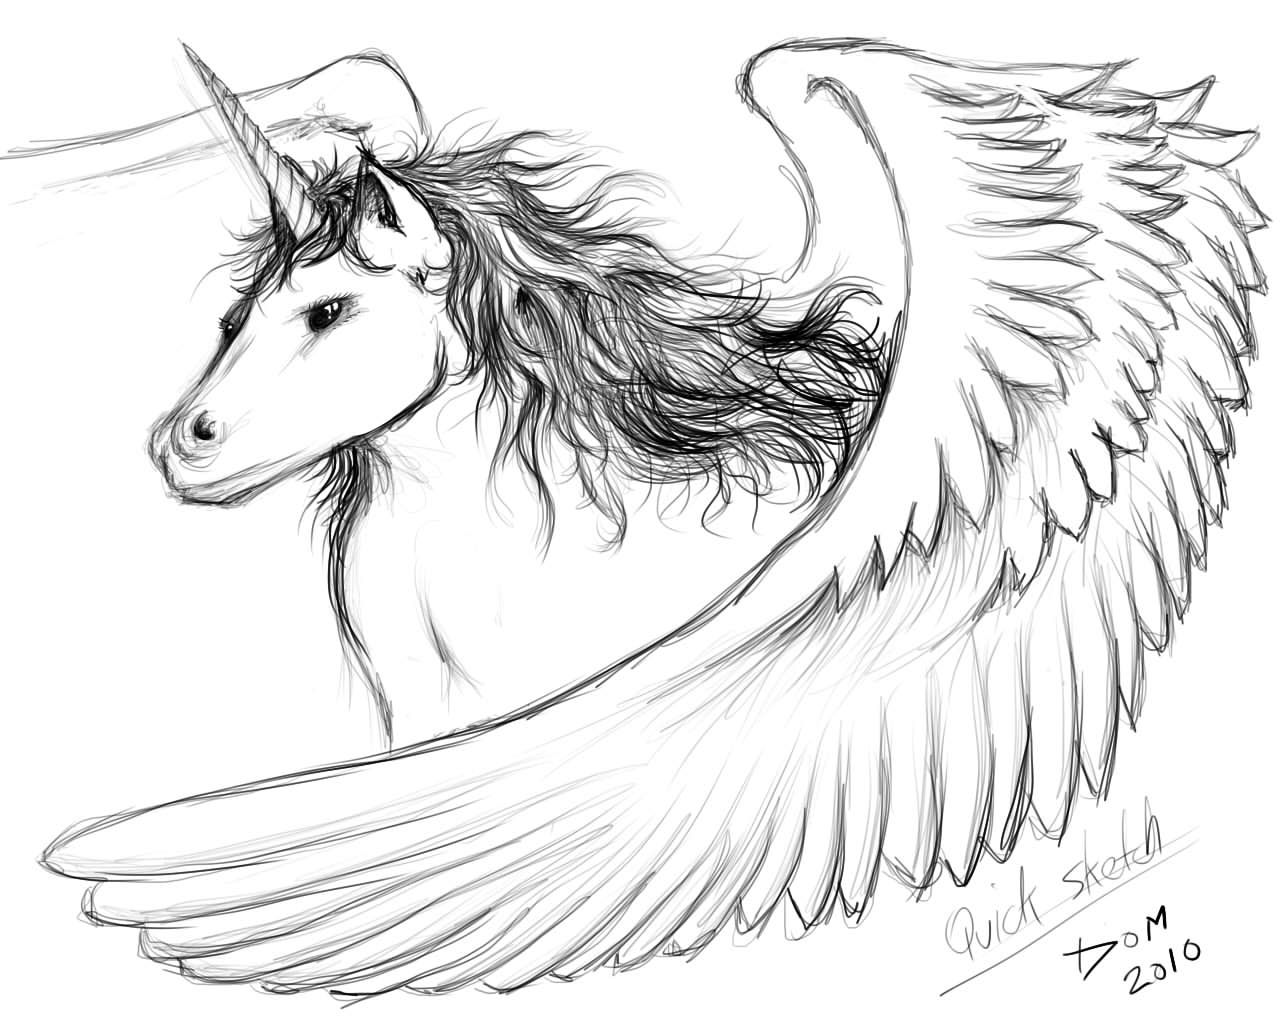 unicorn with wings coloring pages - unipeg sketch by thatdomguy on deviantart pegasus unicorn